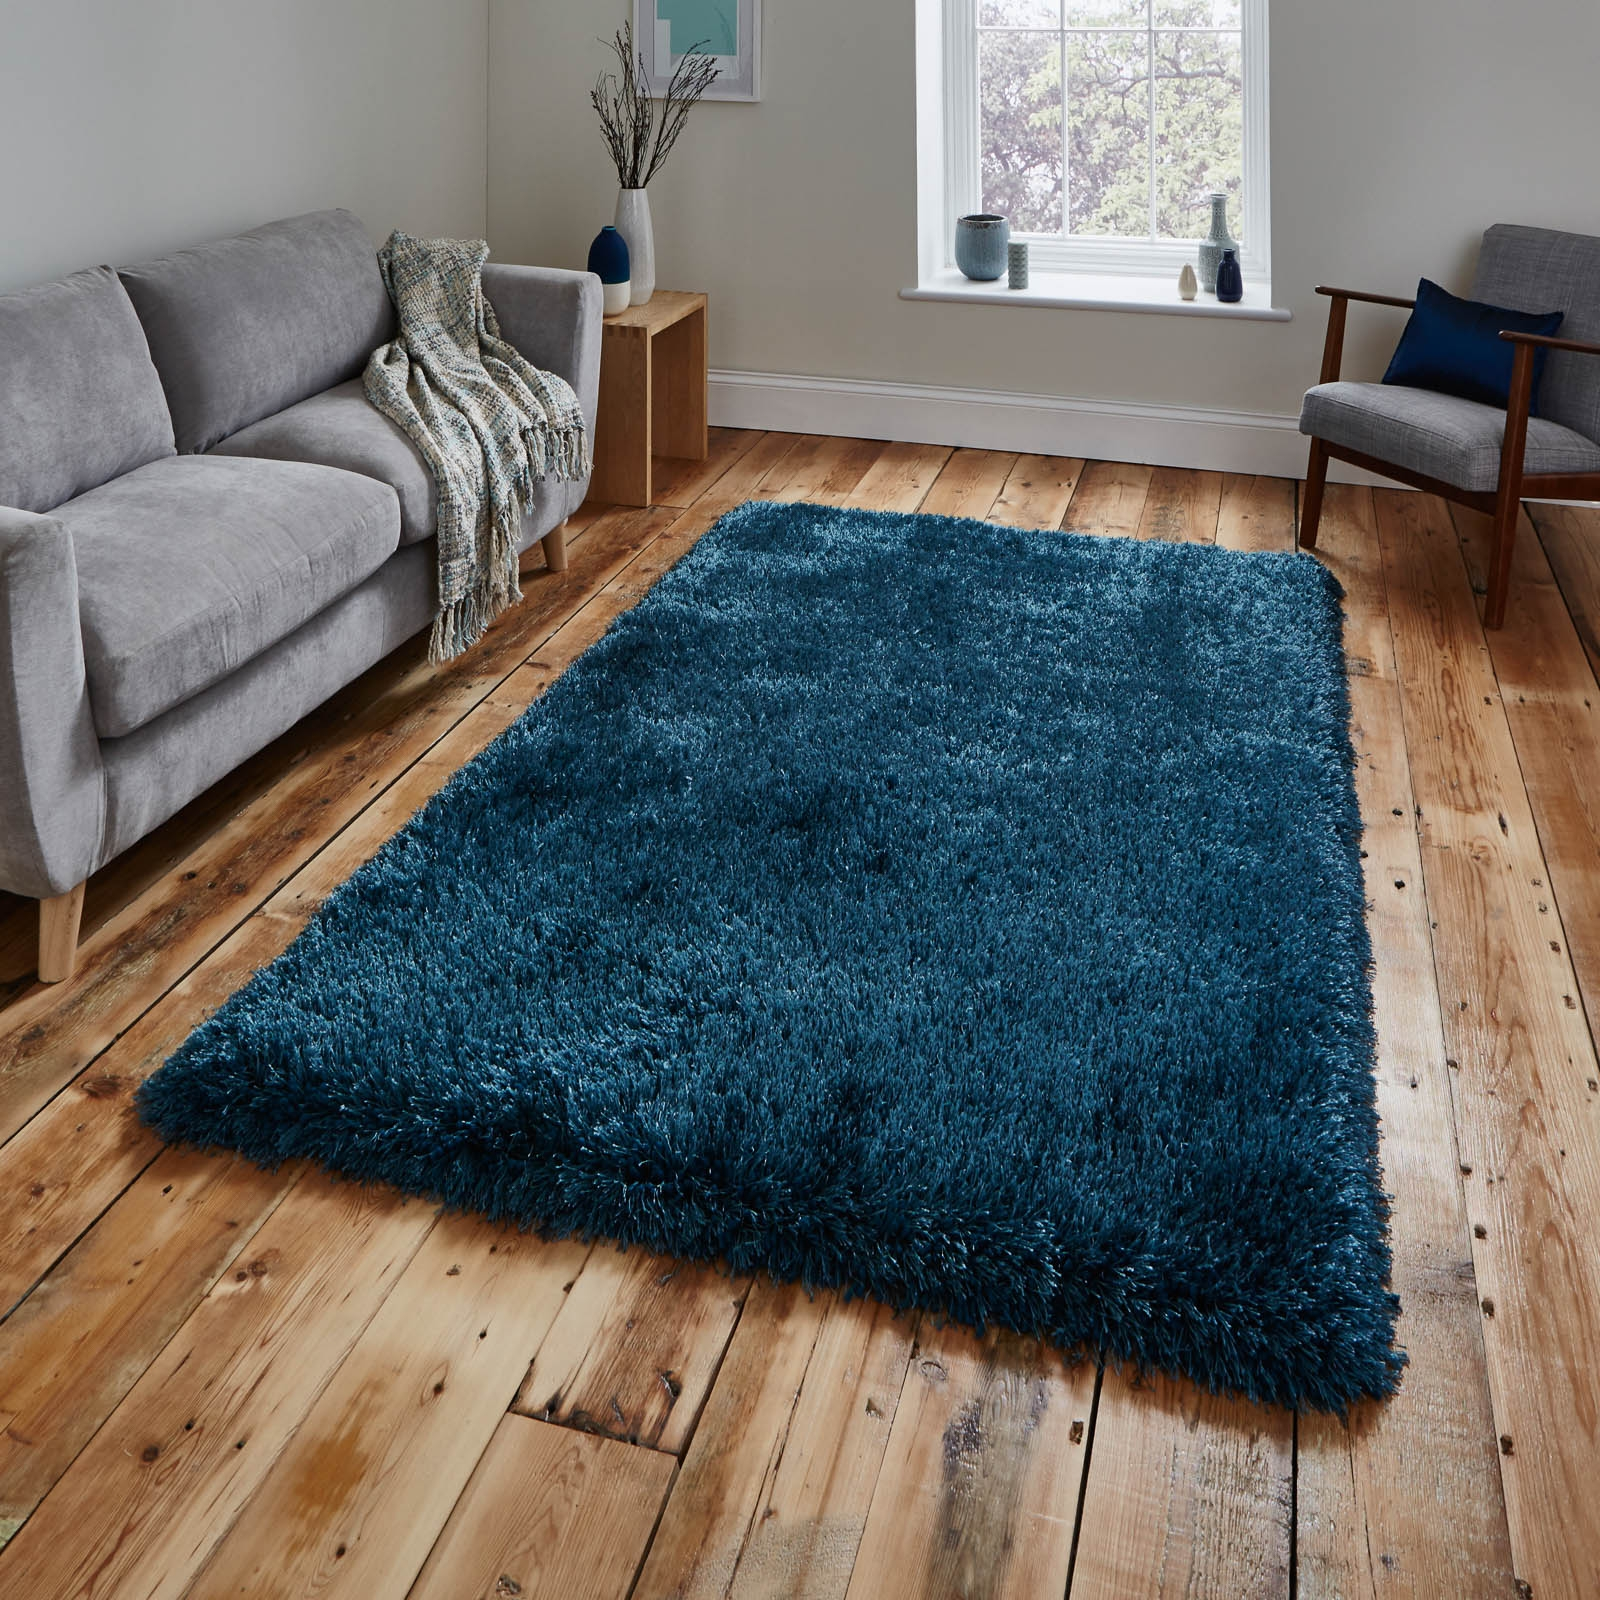 Featured Image of Shaggy Rugs